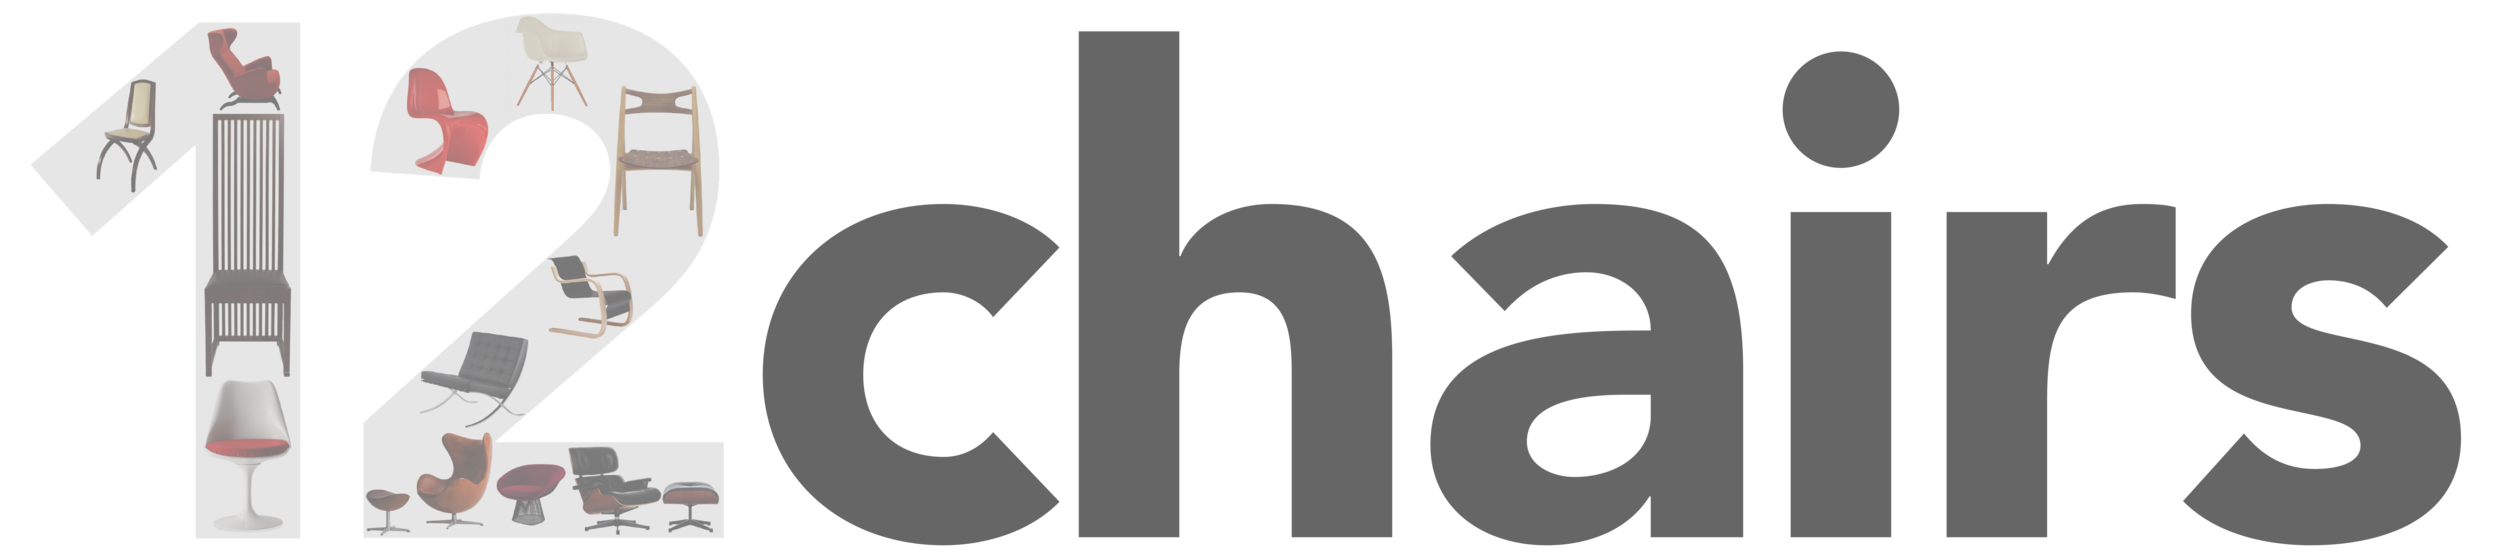 12_Chairs_Logo_Transparent-03-01.png